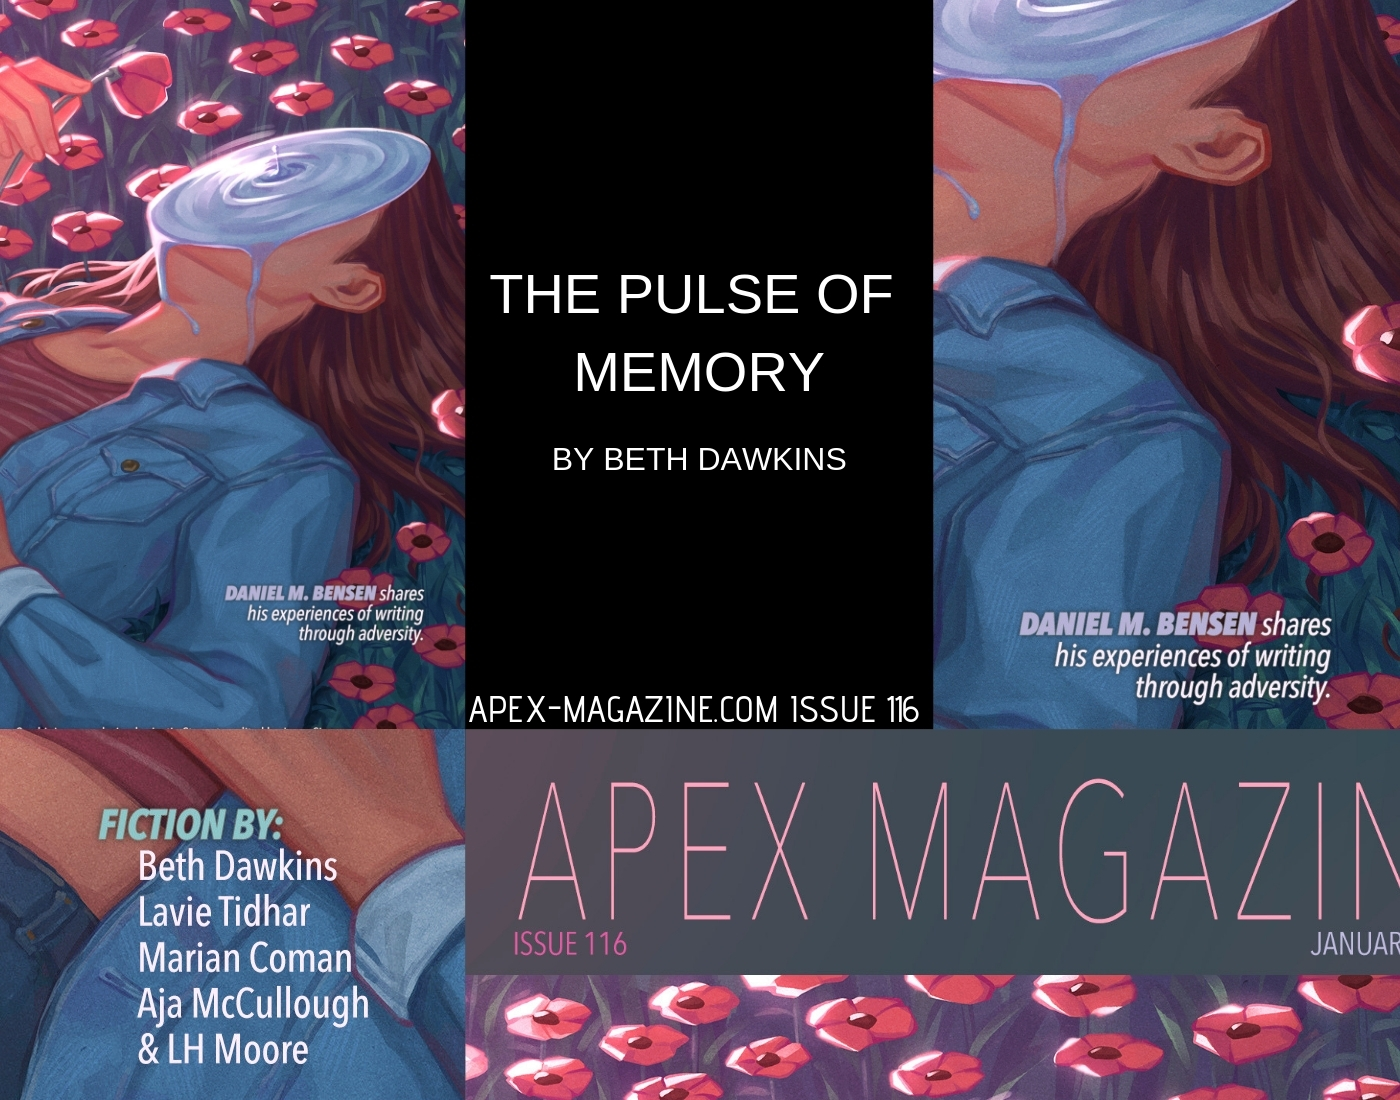 The Pulse of Memory